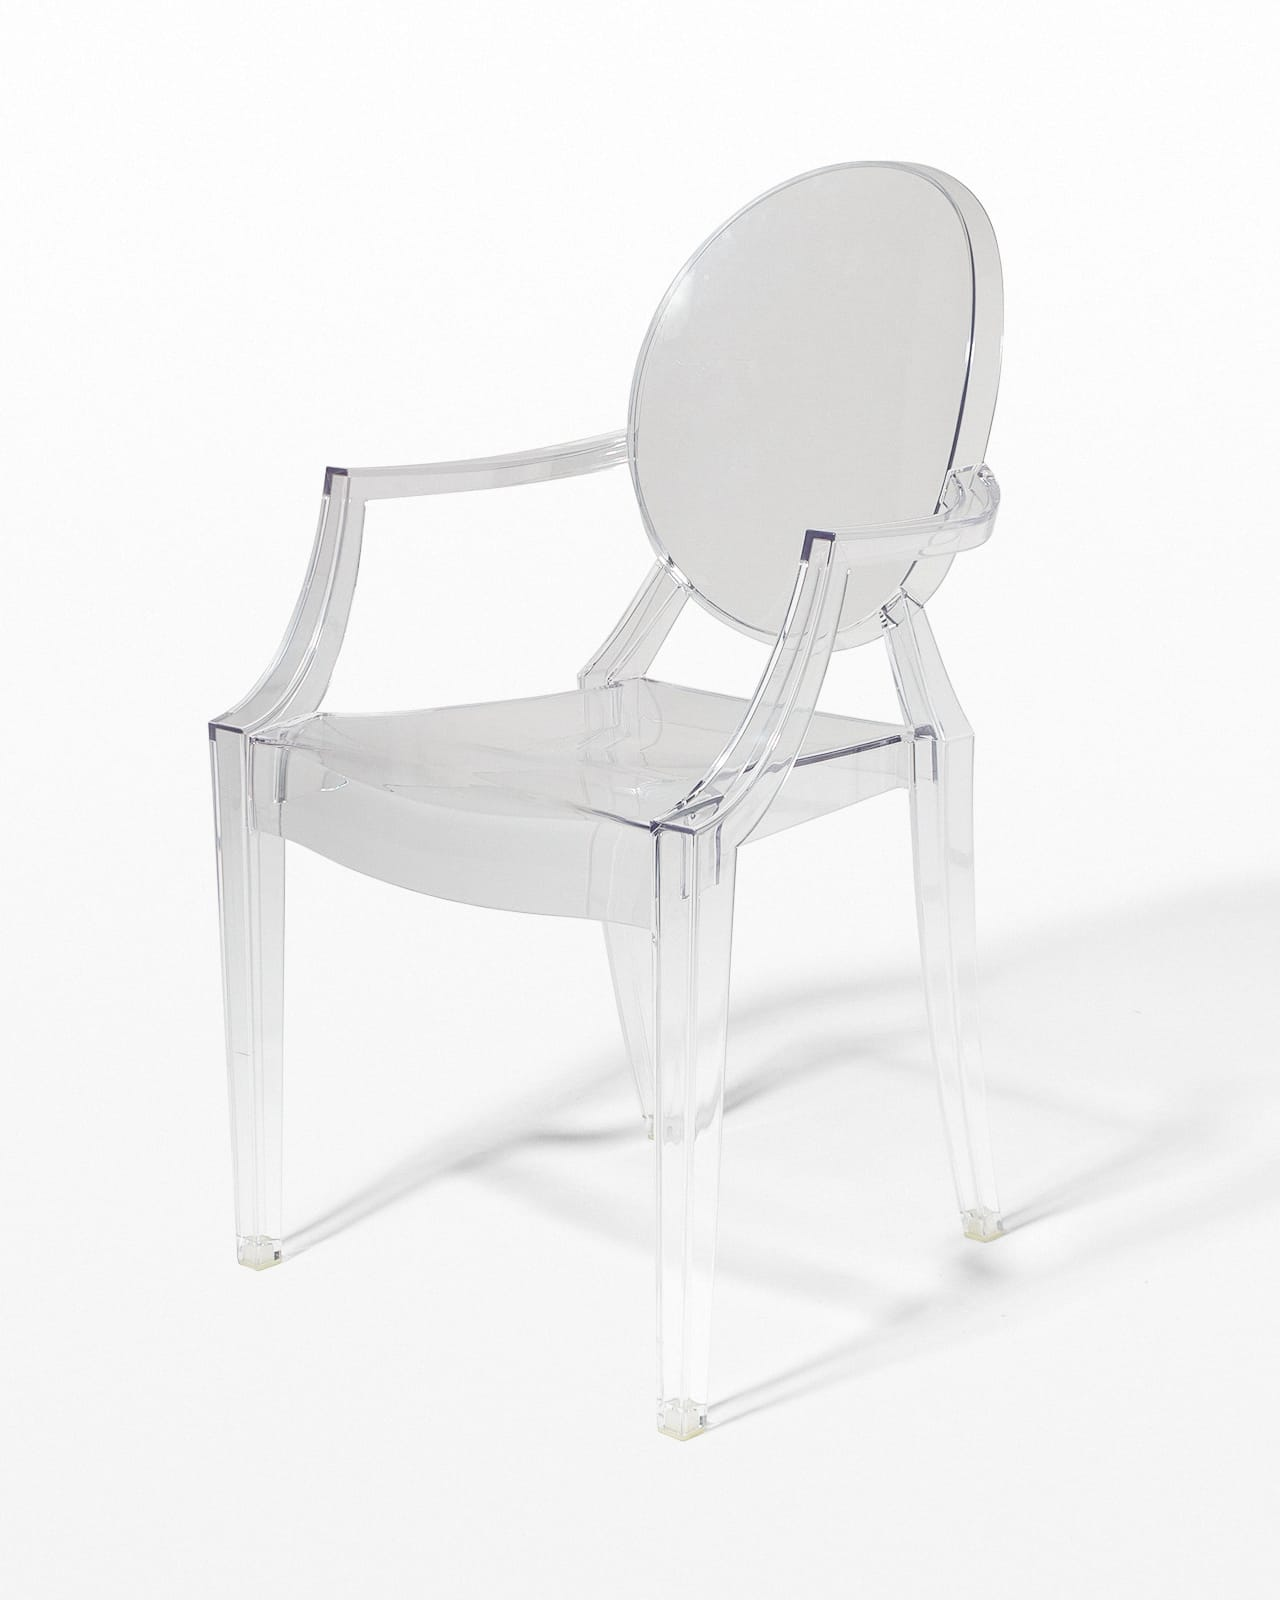 ghost chair rental dining seat covers john lewis ch074 acrylic prop acme brooklyn front view of